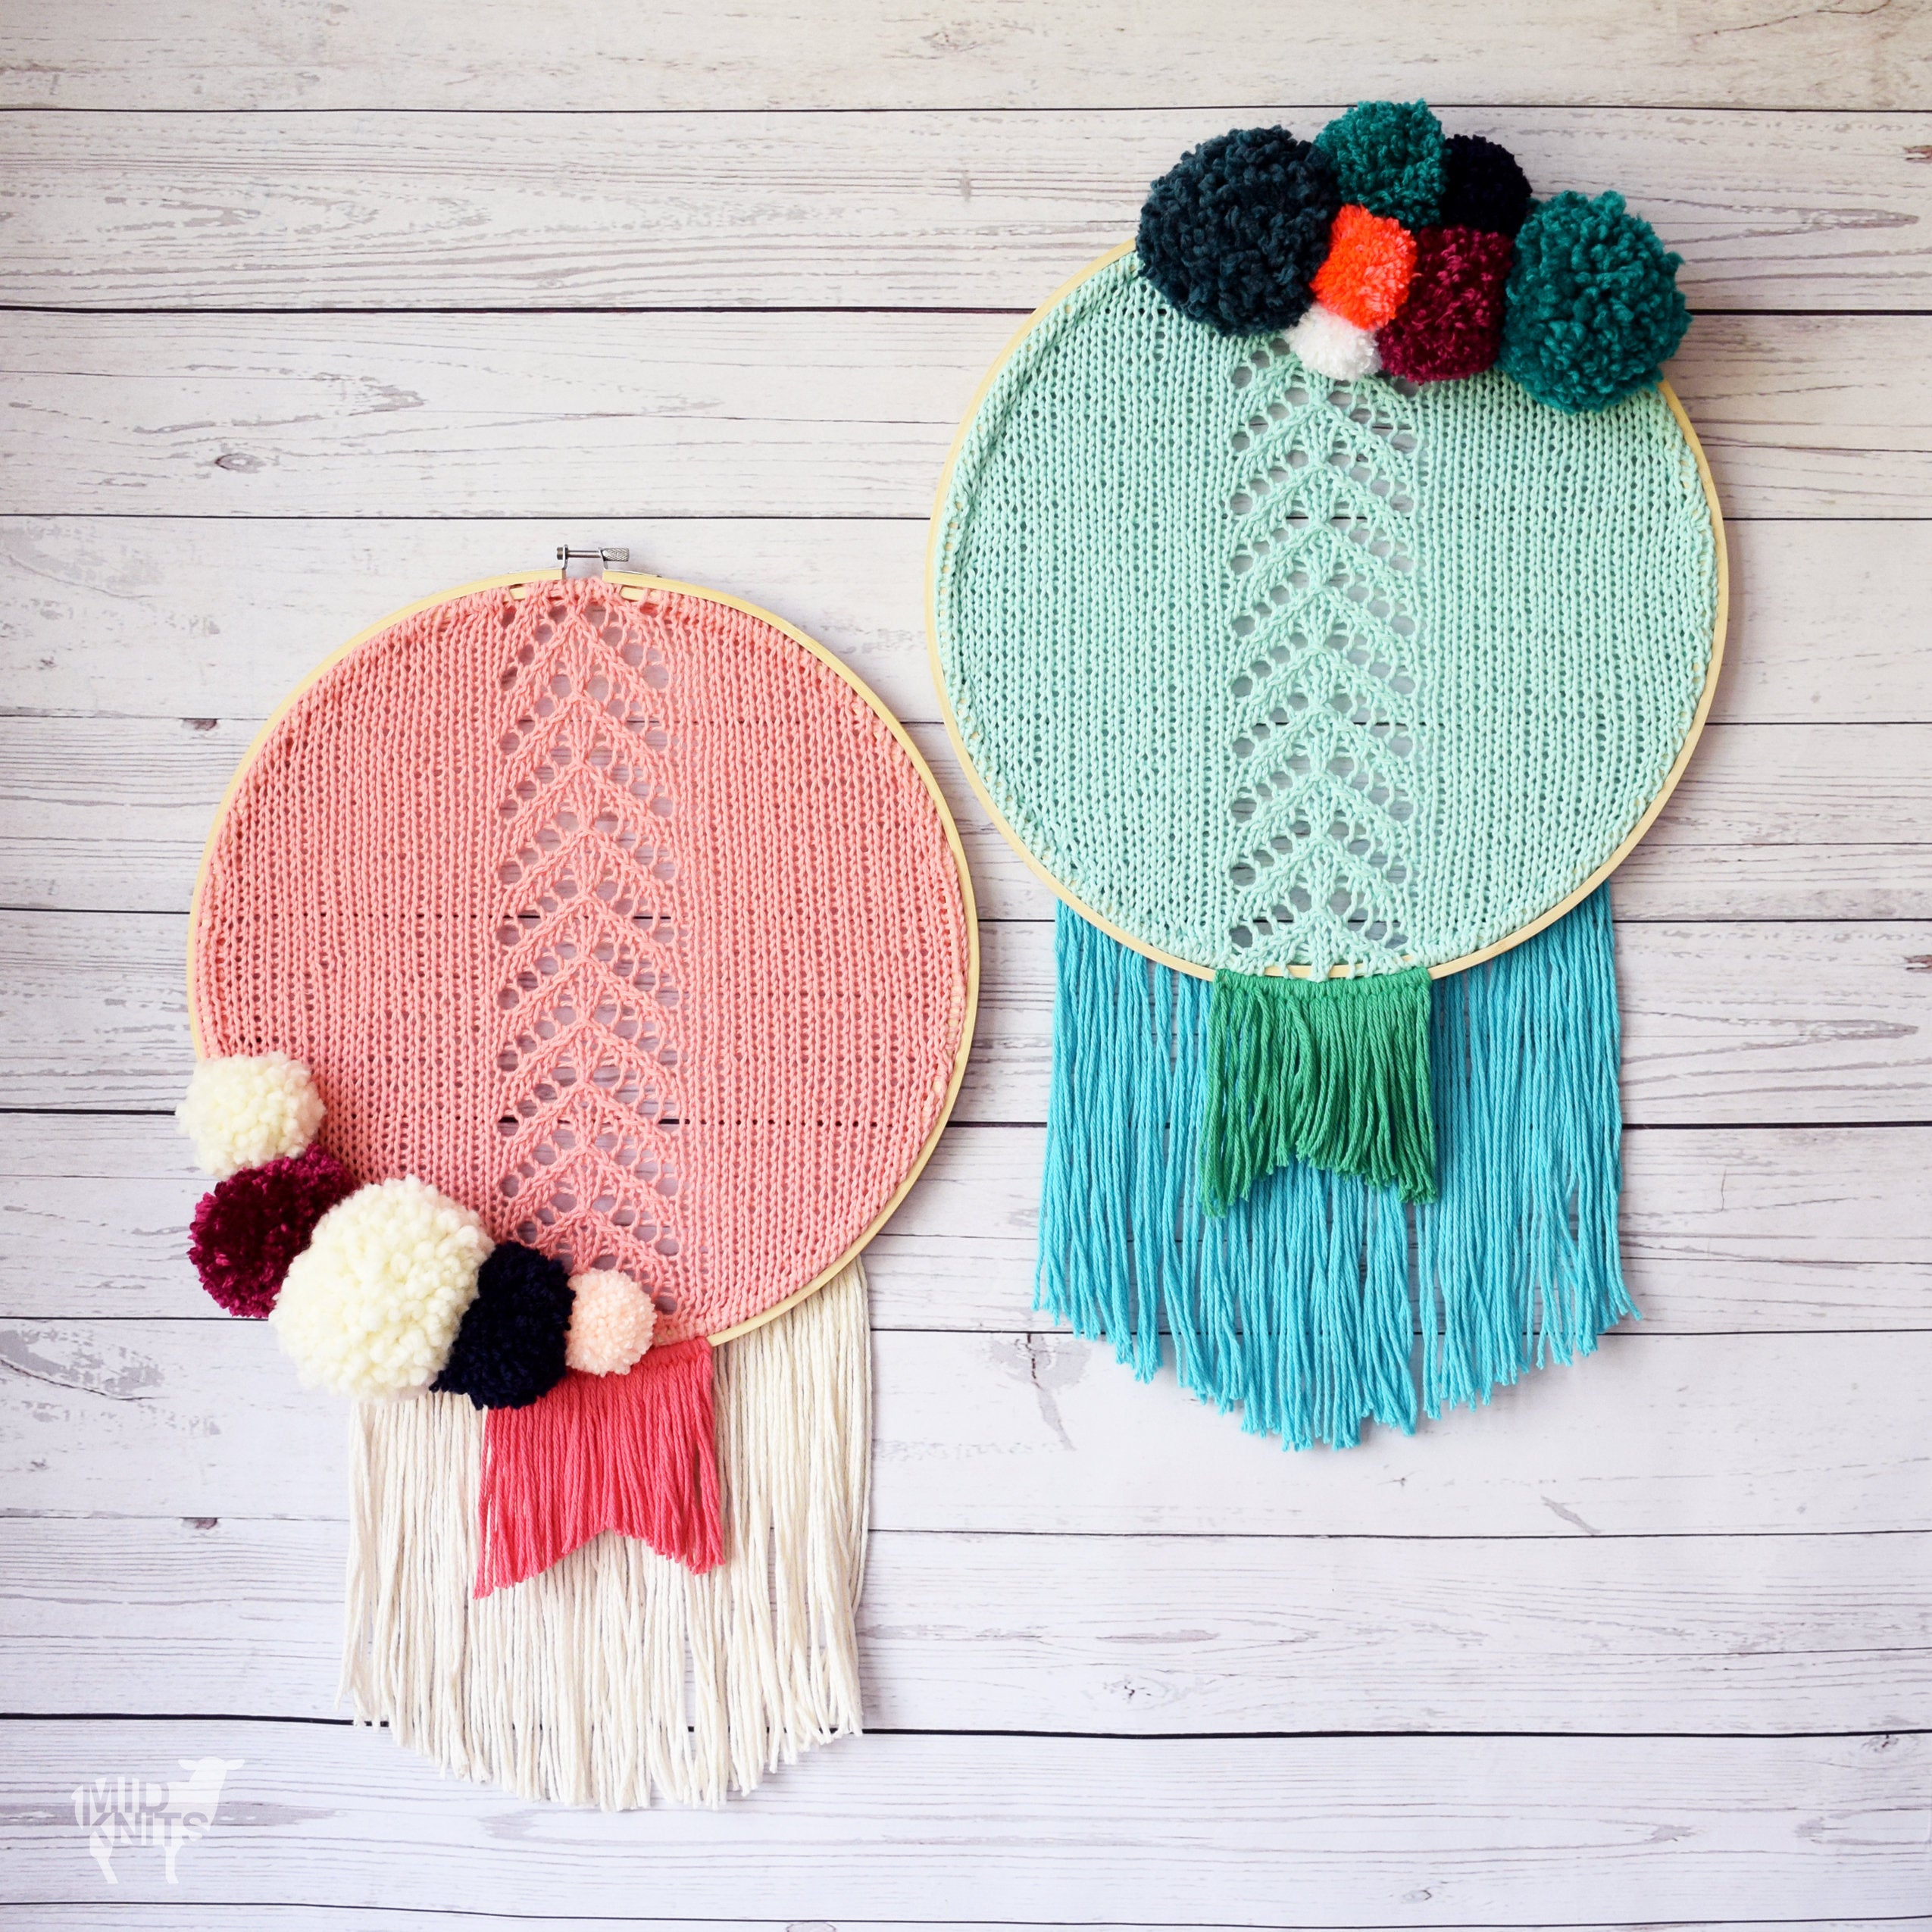 Chevron Knitting Pattern Diy Knitting Pattern Chevron Fringe Dreamcatcher Inspired Etsy